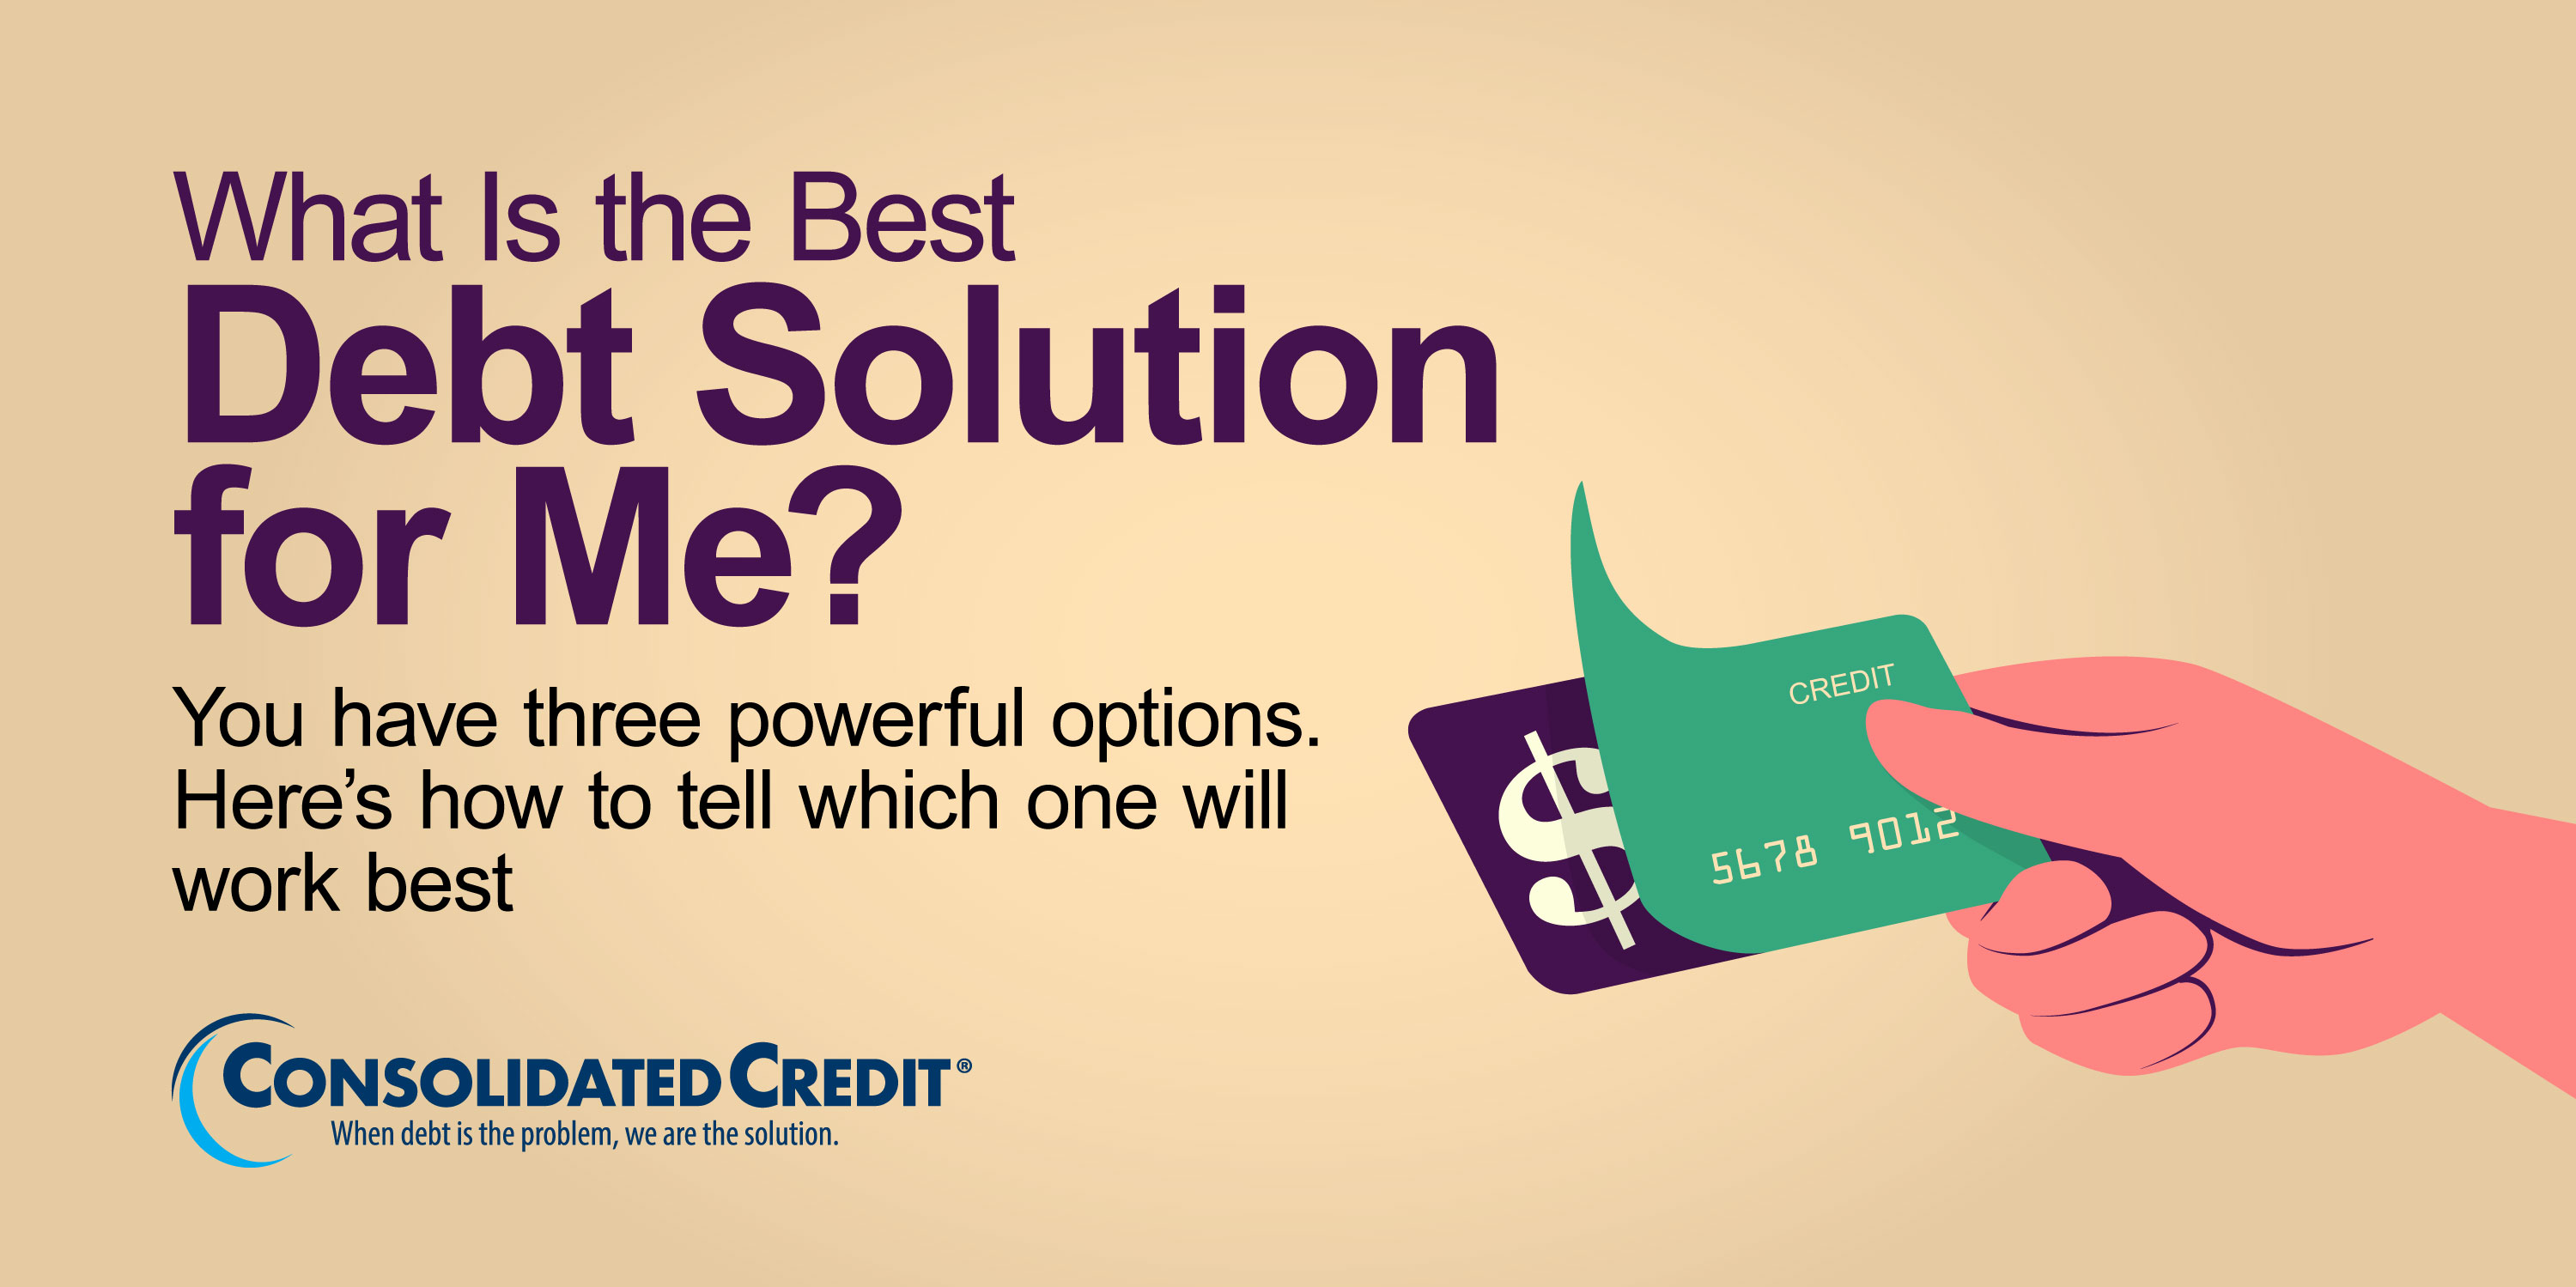 What is the best debt solution for me? You have three powerful options. Here's how to tell which one will work best